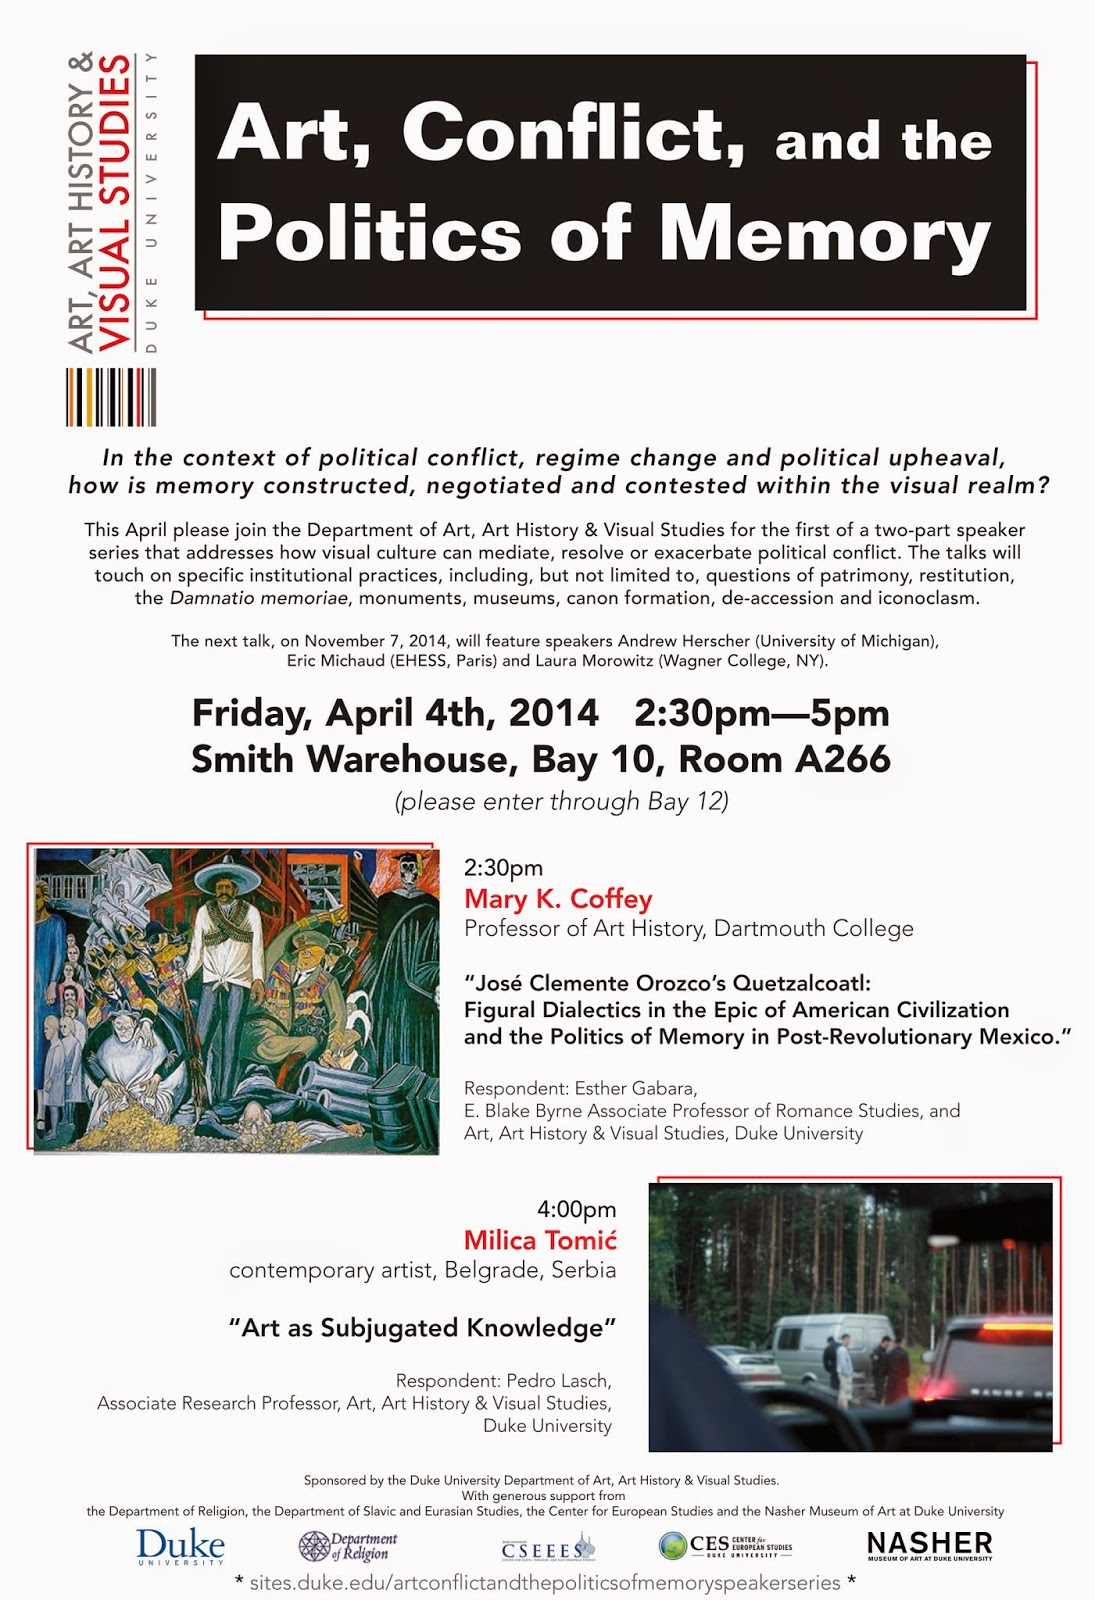 http://sites.duke.edu/artconflictandthepoliticsofmemoryspeakerseries/